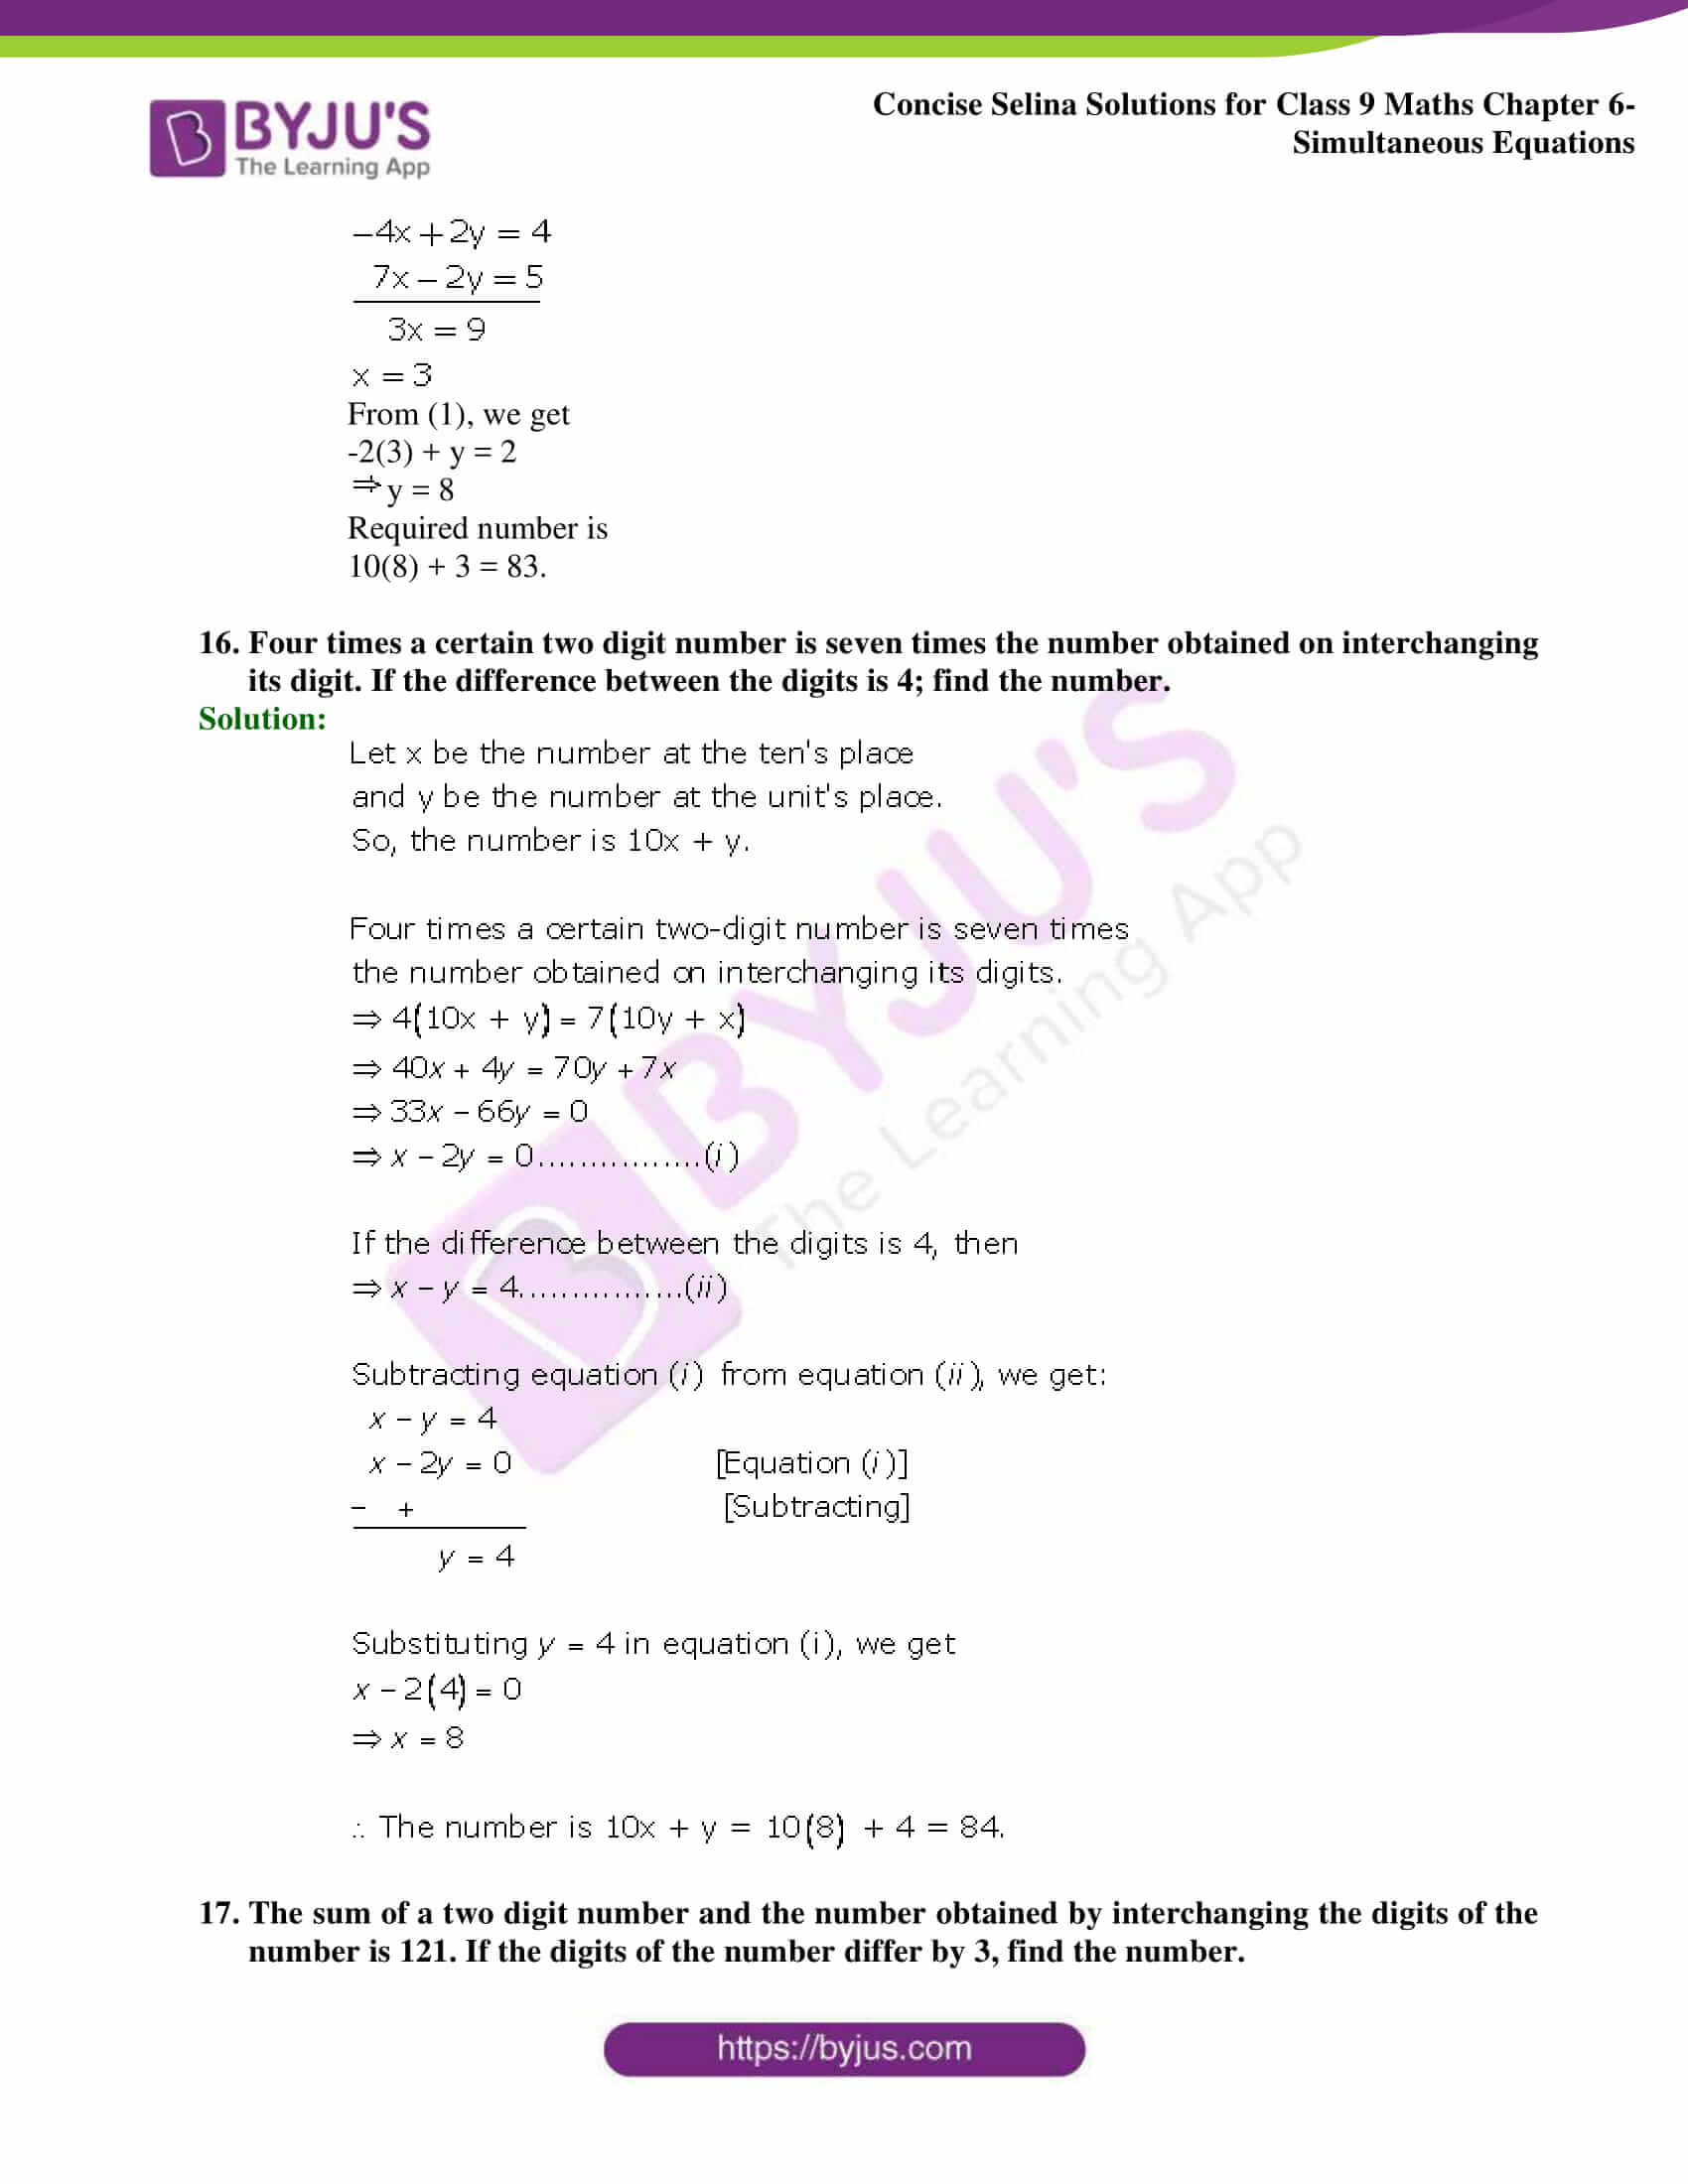 Selina Solutions Class 9 Maths Chapter 6 Simultaneous Equations part 45